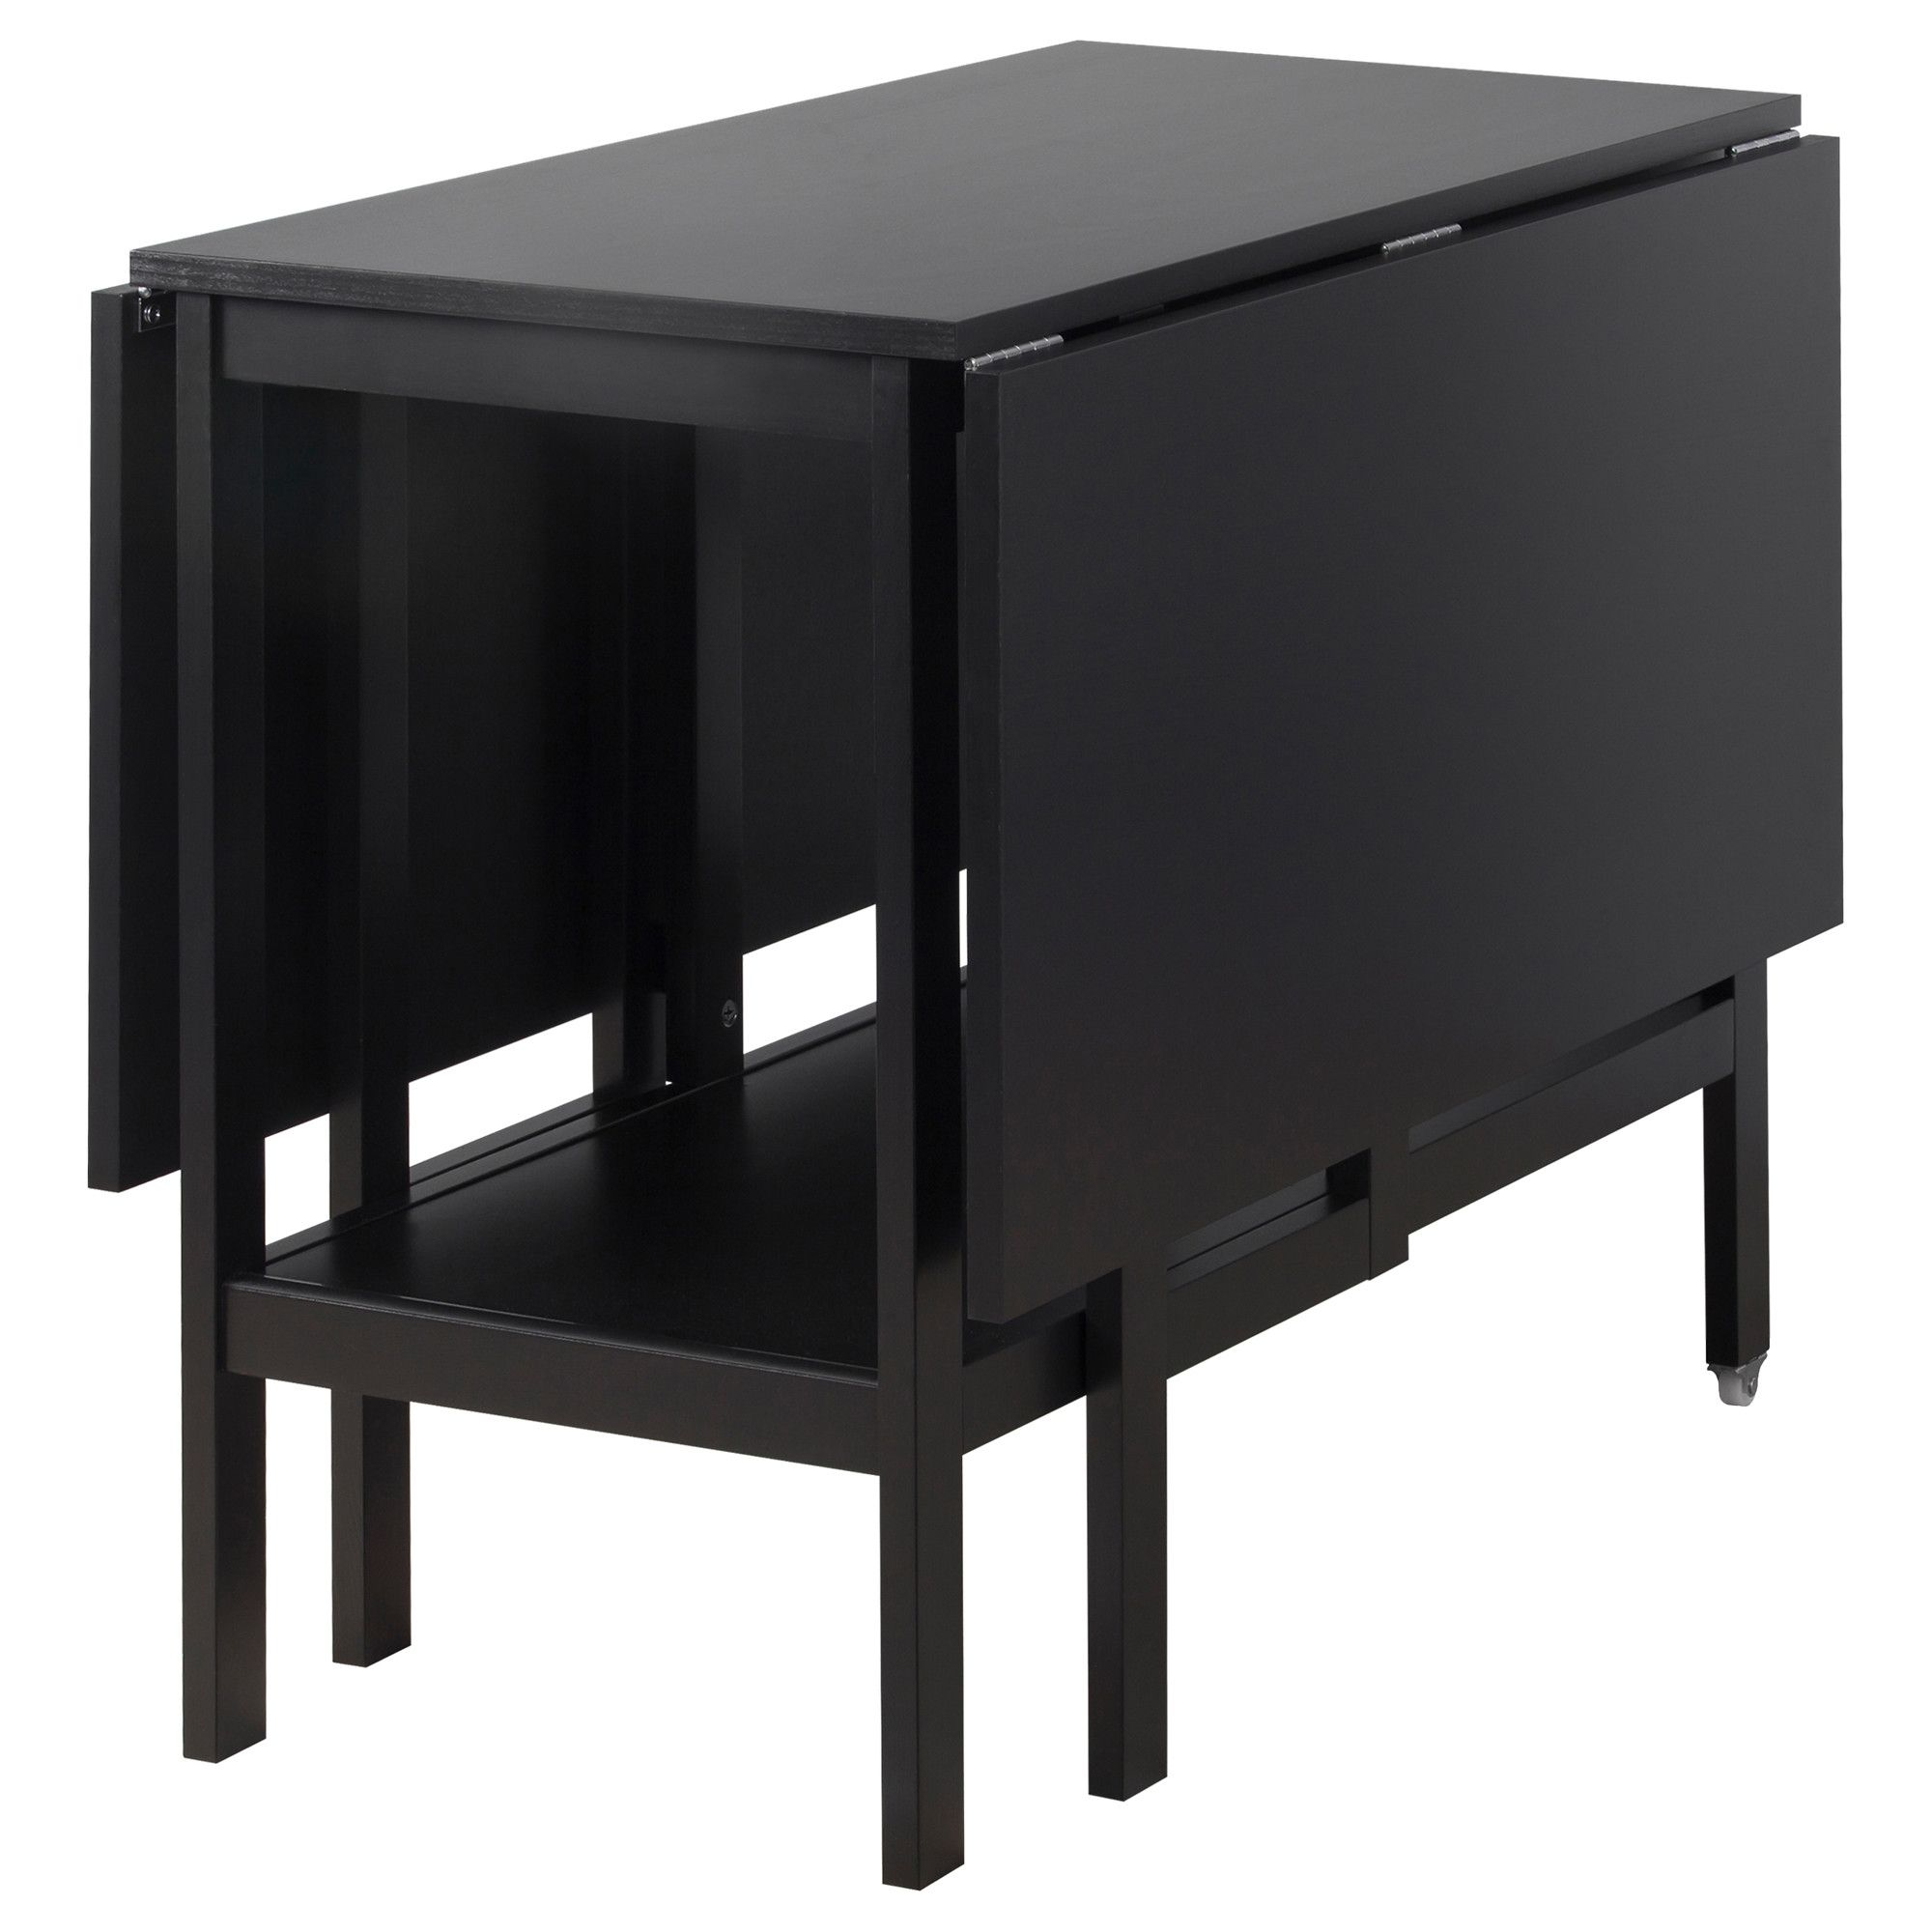 Black Fold Down Table And Chairs httpbrutabolincom Pinterest